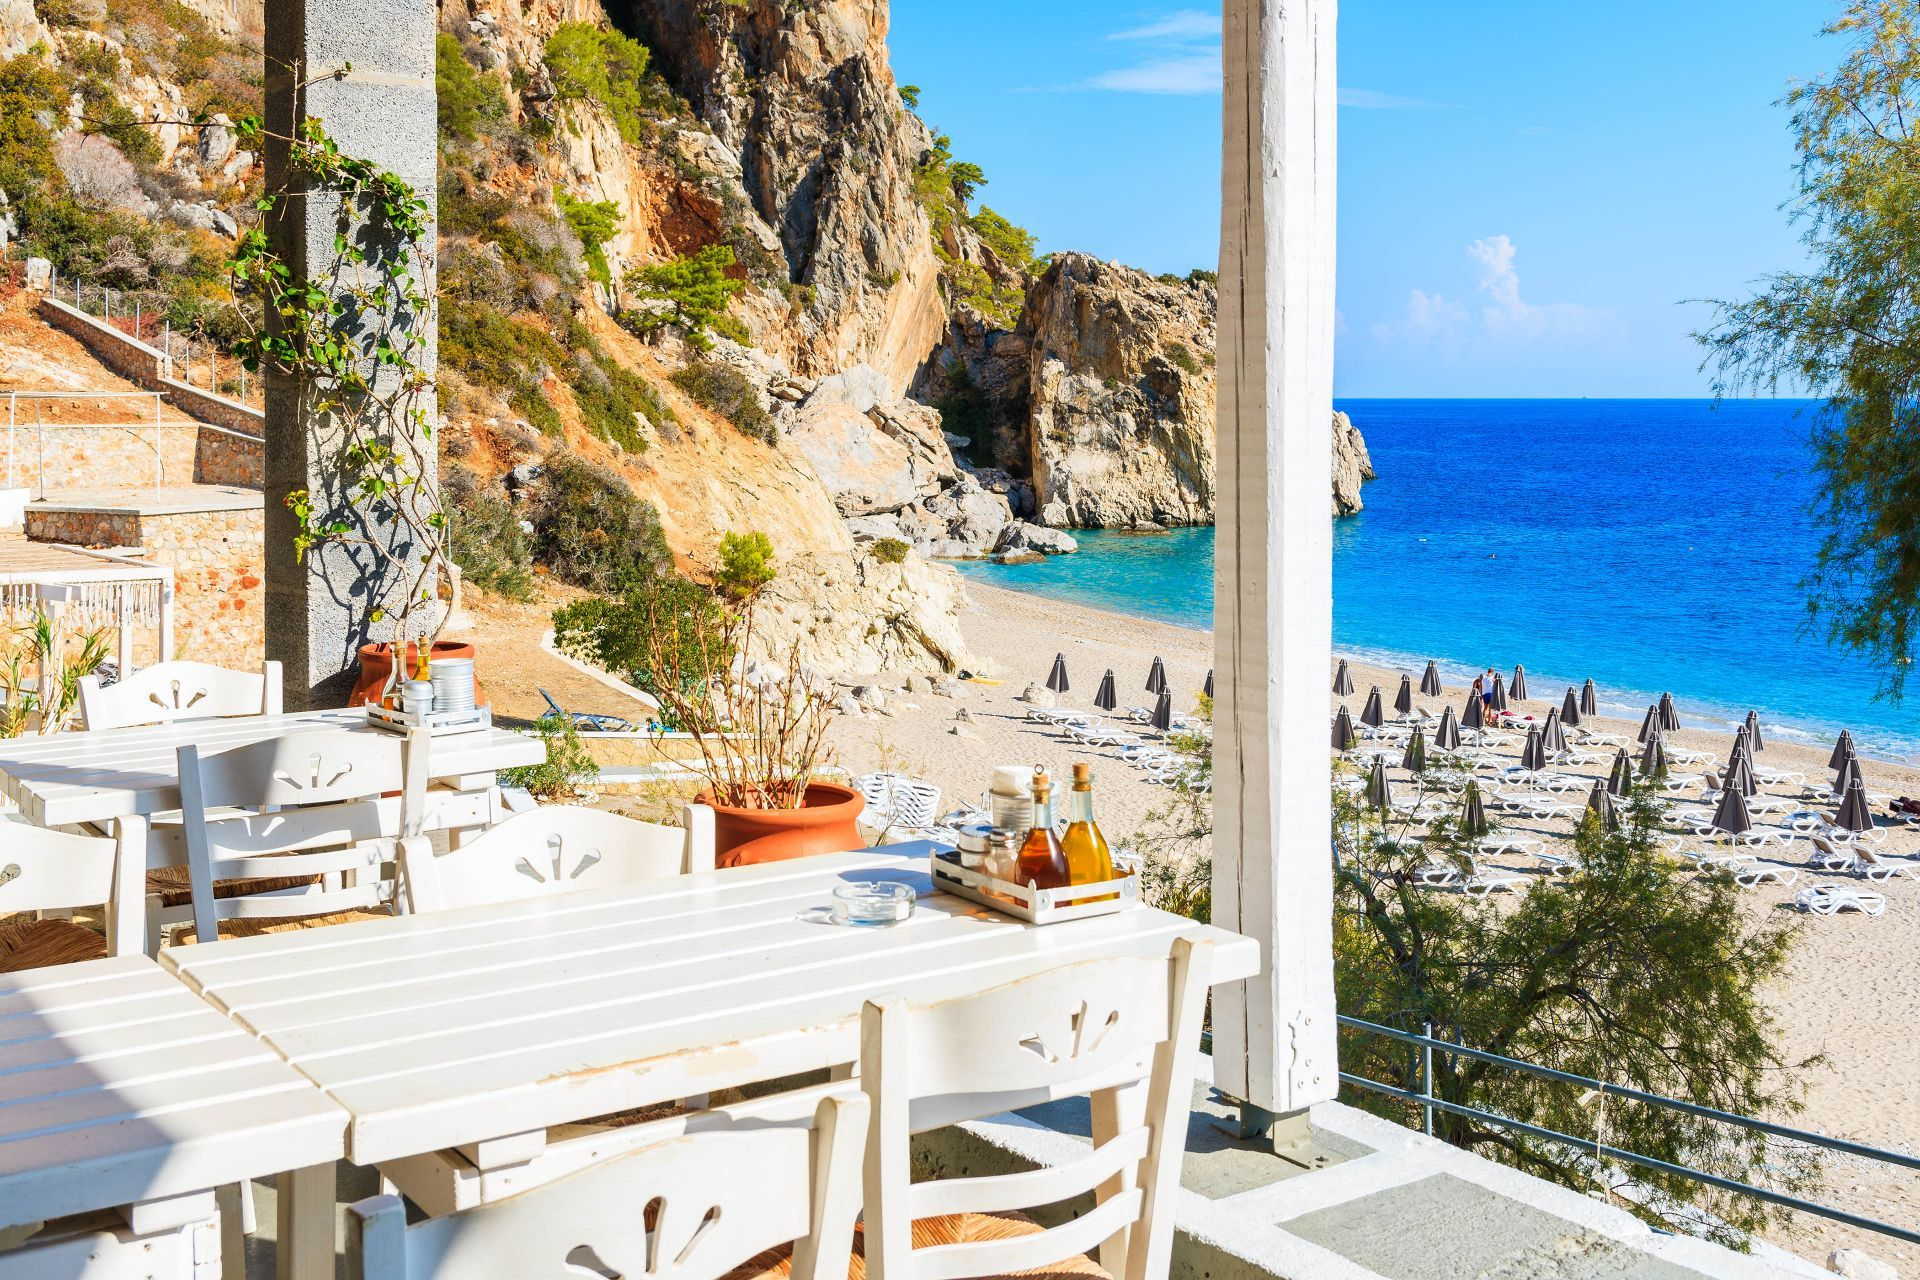 Places to eat and drink in Karpathos